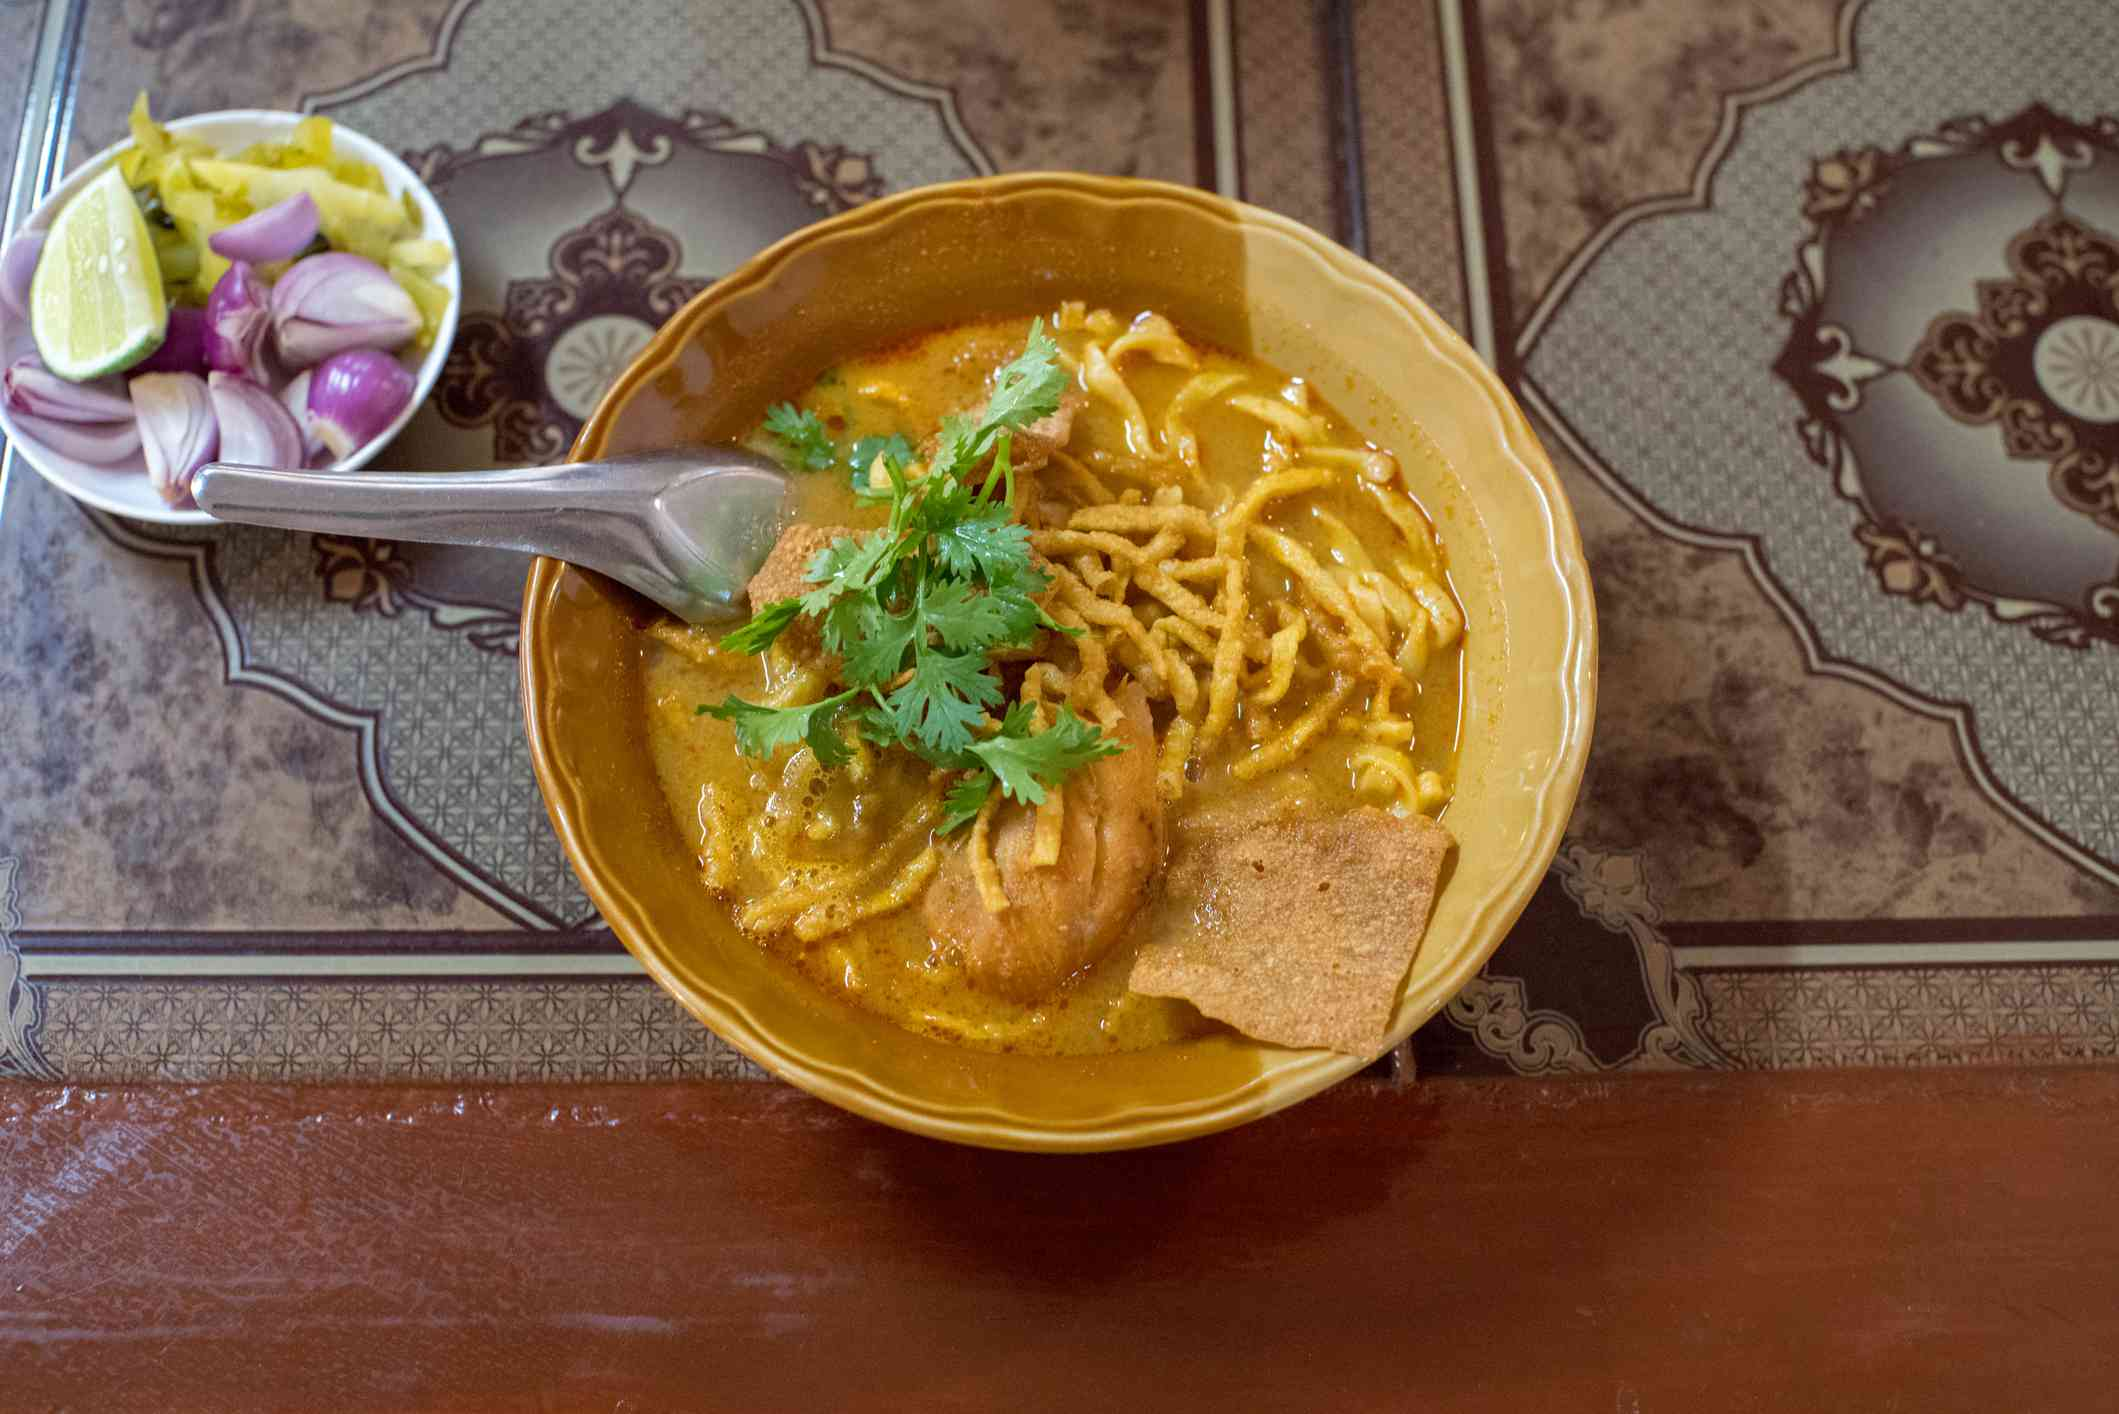 overhead view of a bowl of khao soi